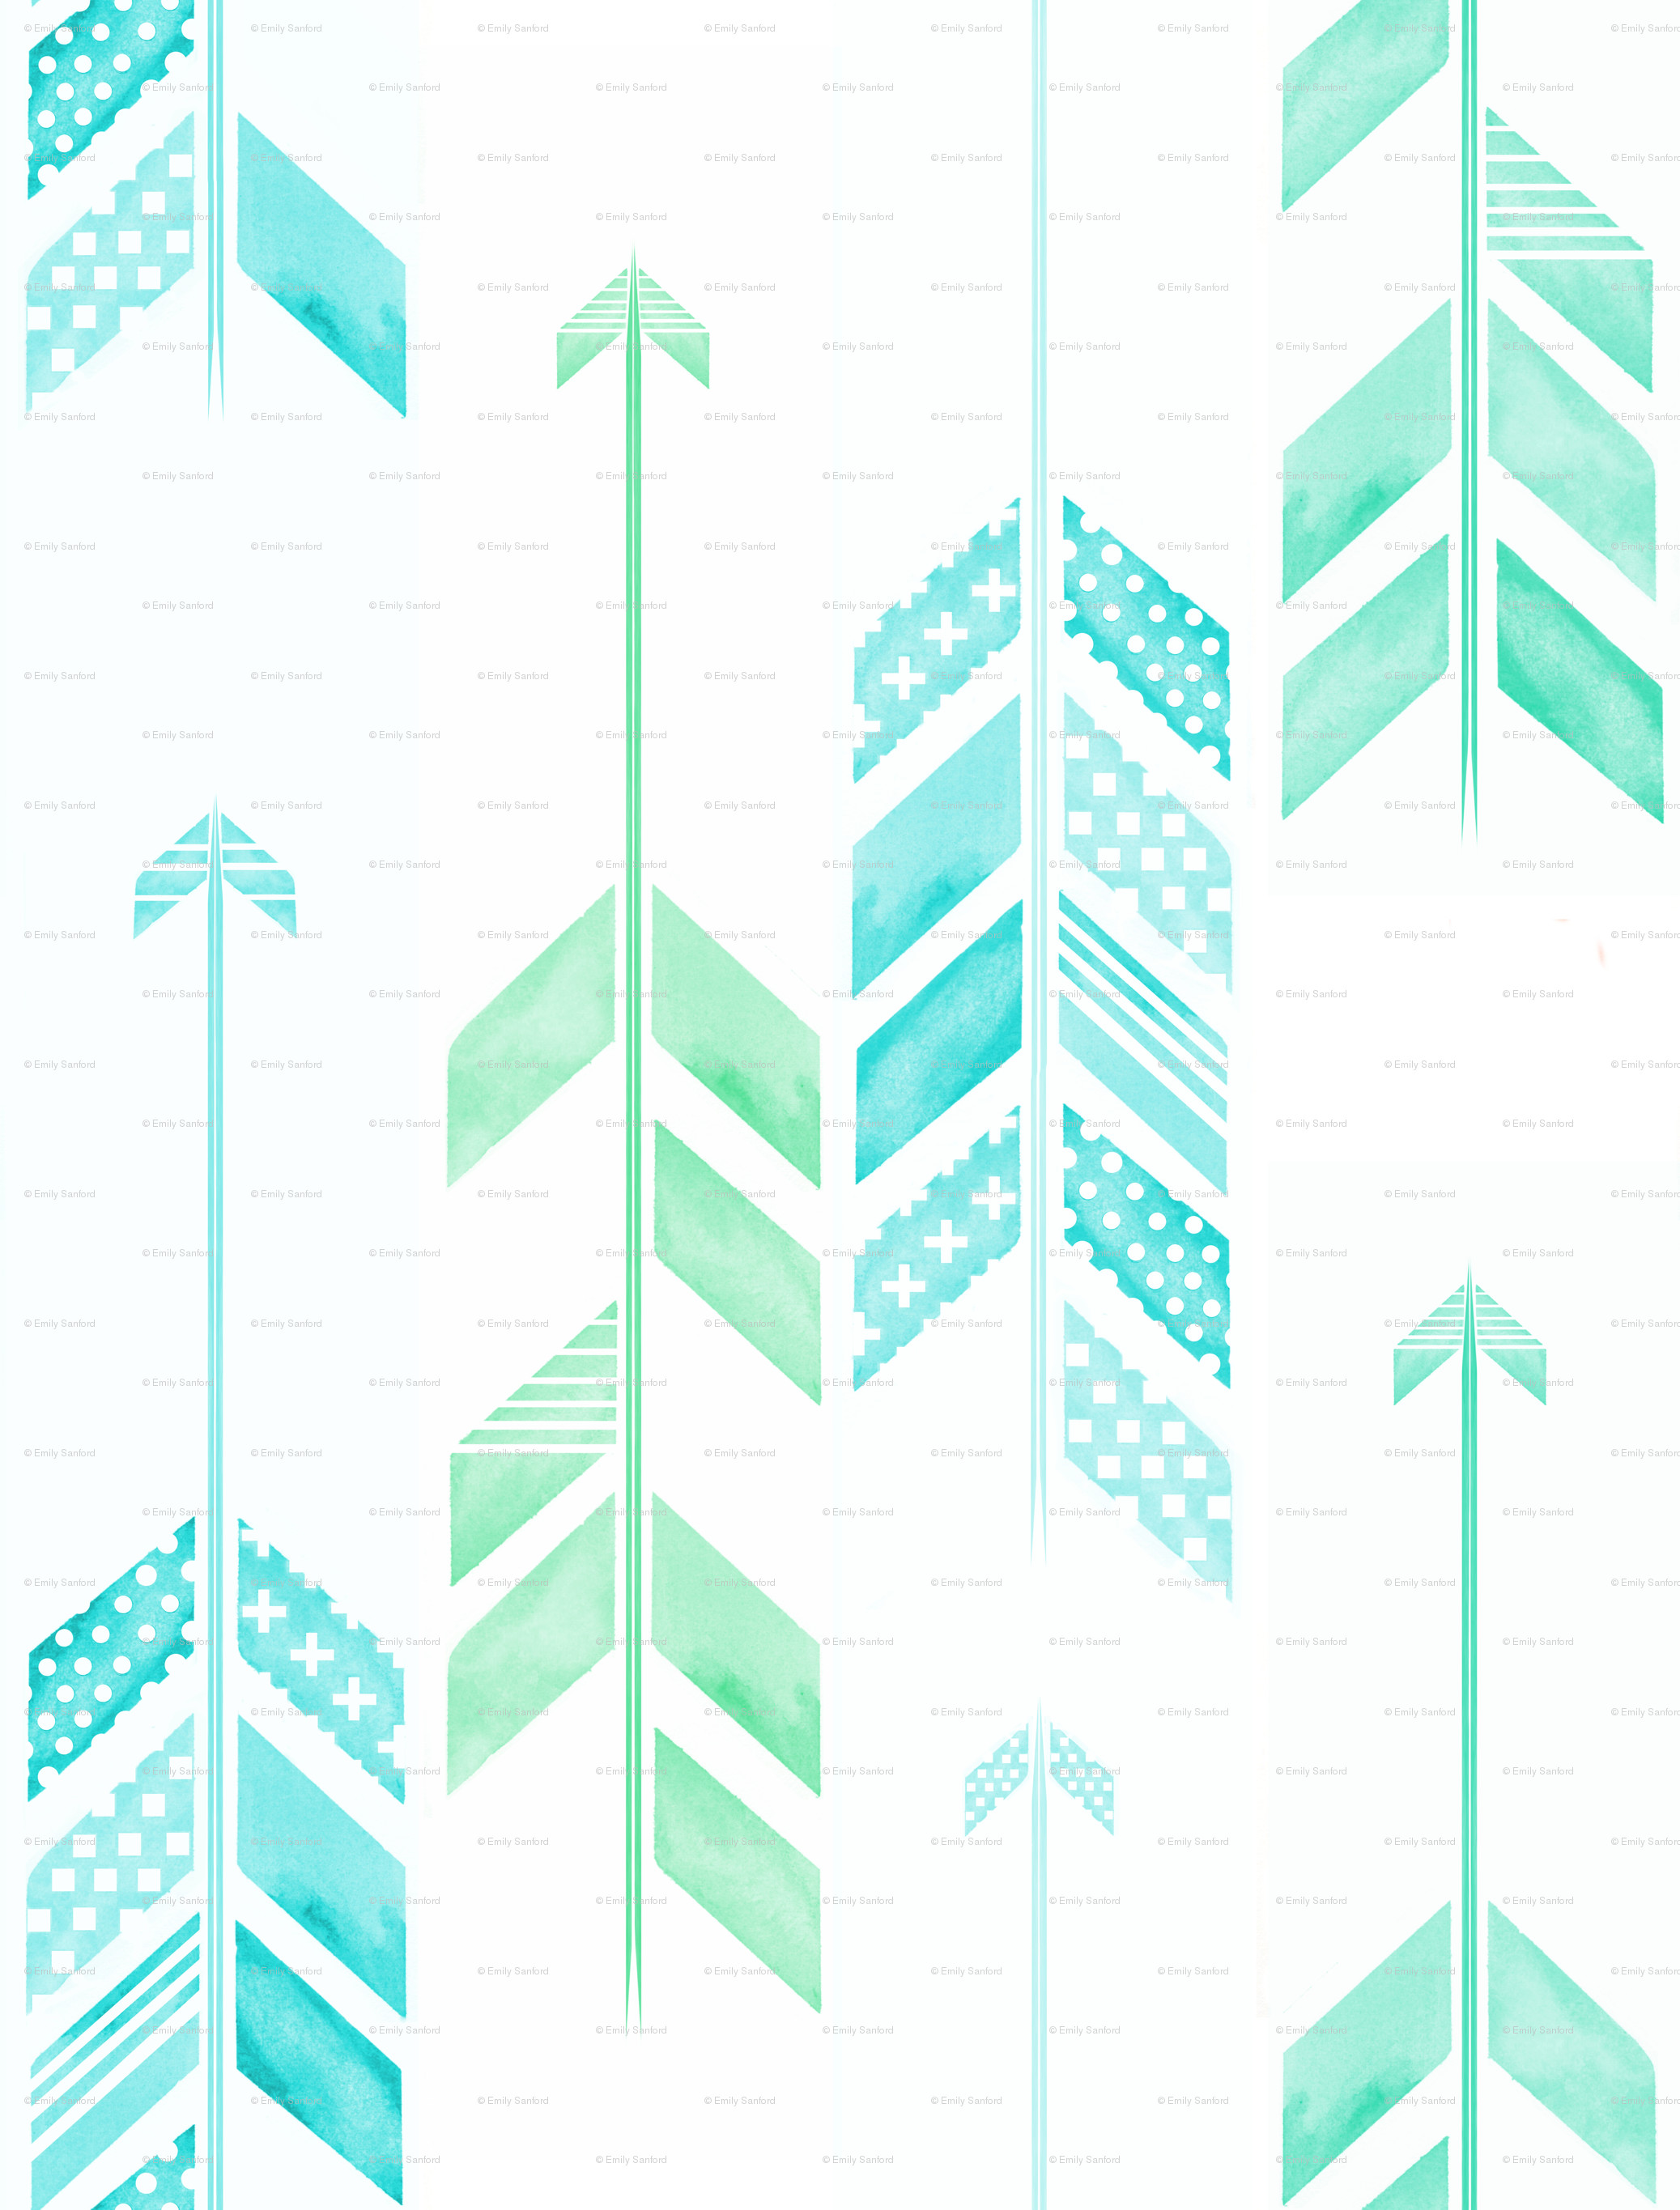 2075x2730 Mint Green Tribal Wallpaper Arrows in blue & green